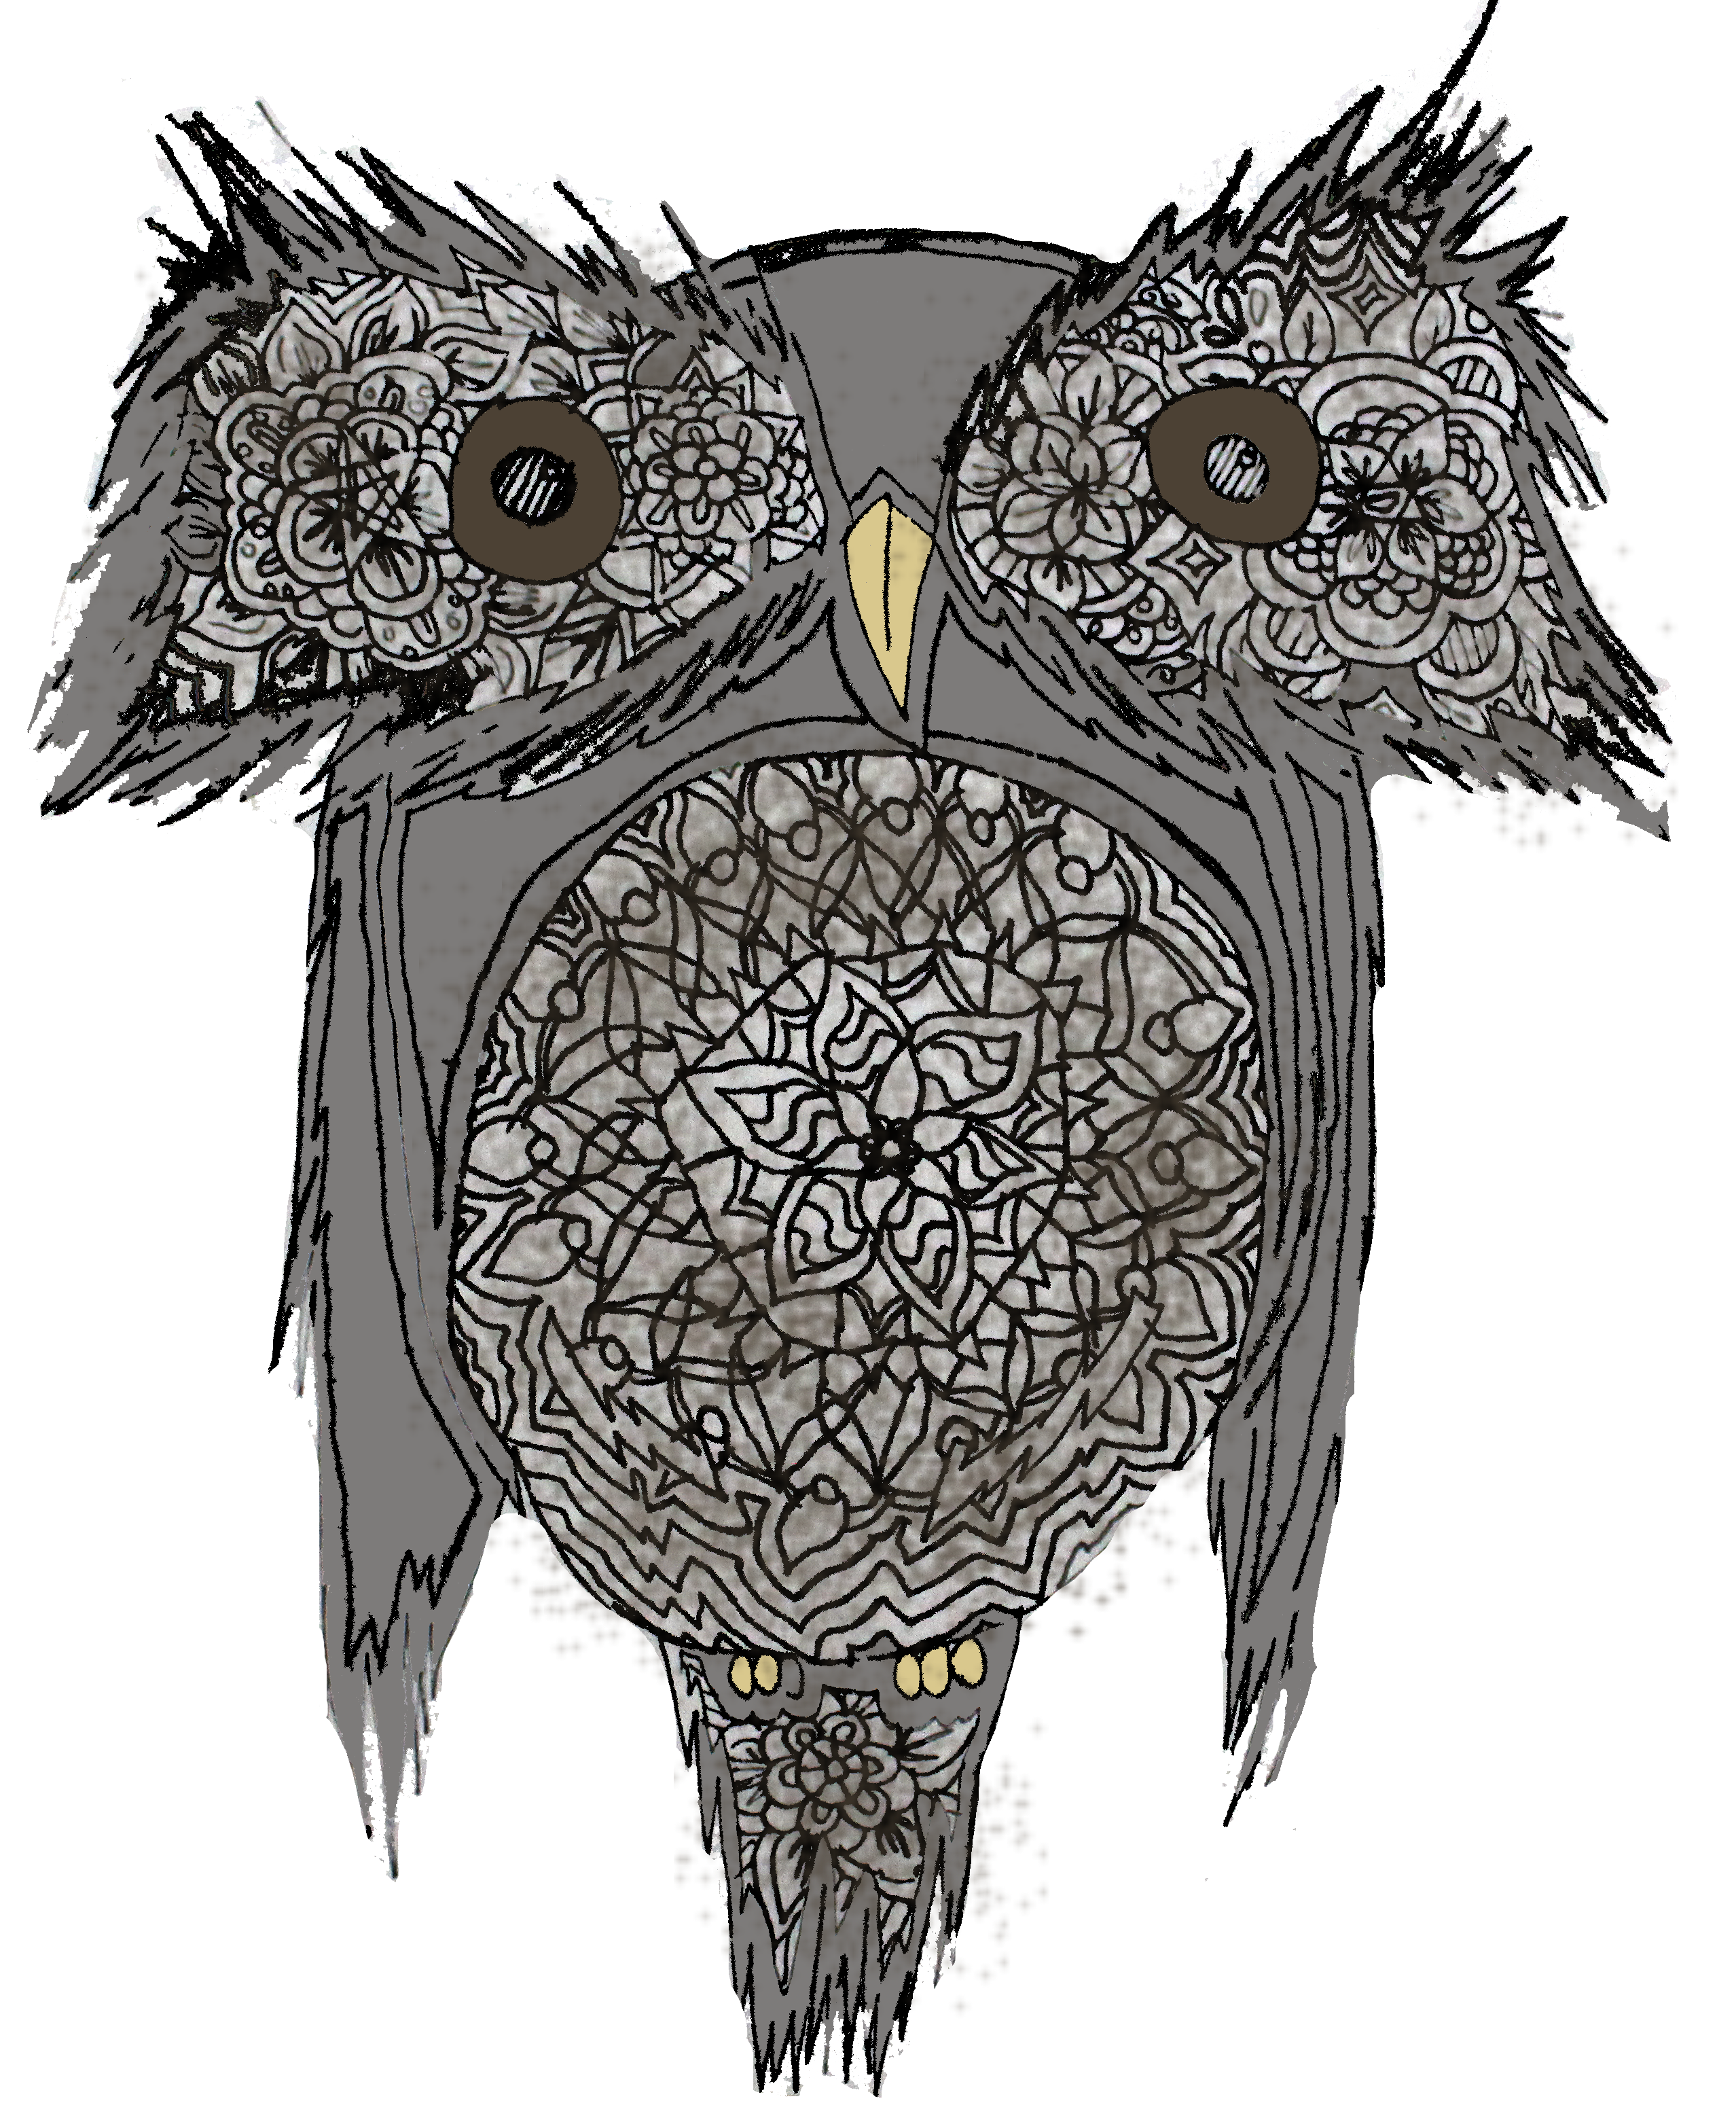 clipart royalty free download Owala brown bird animal. Drawing owl flower